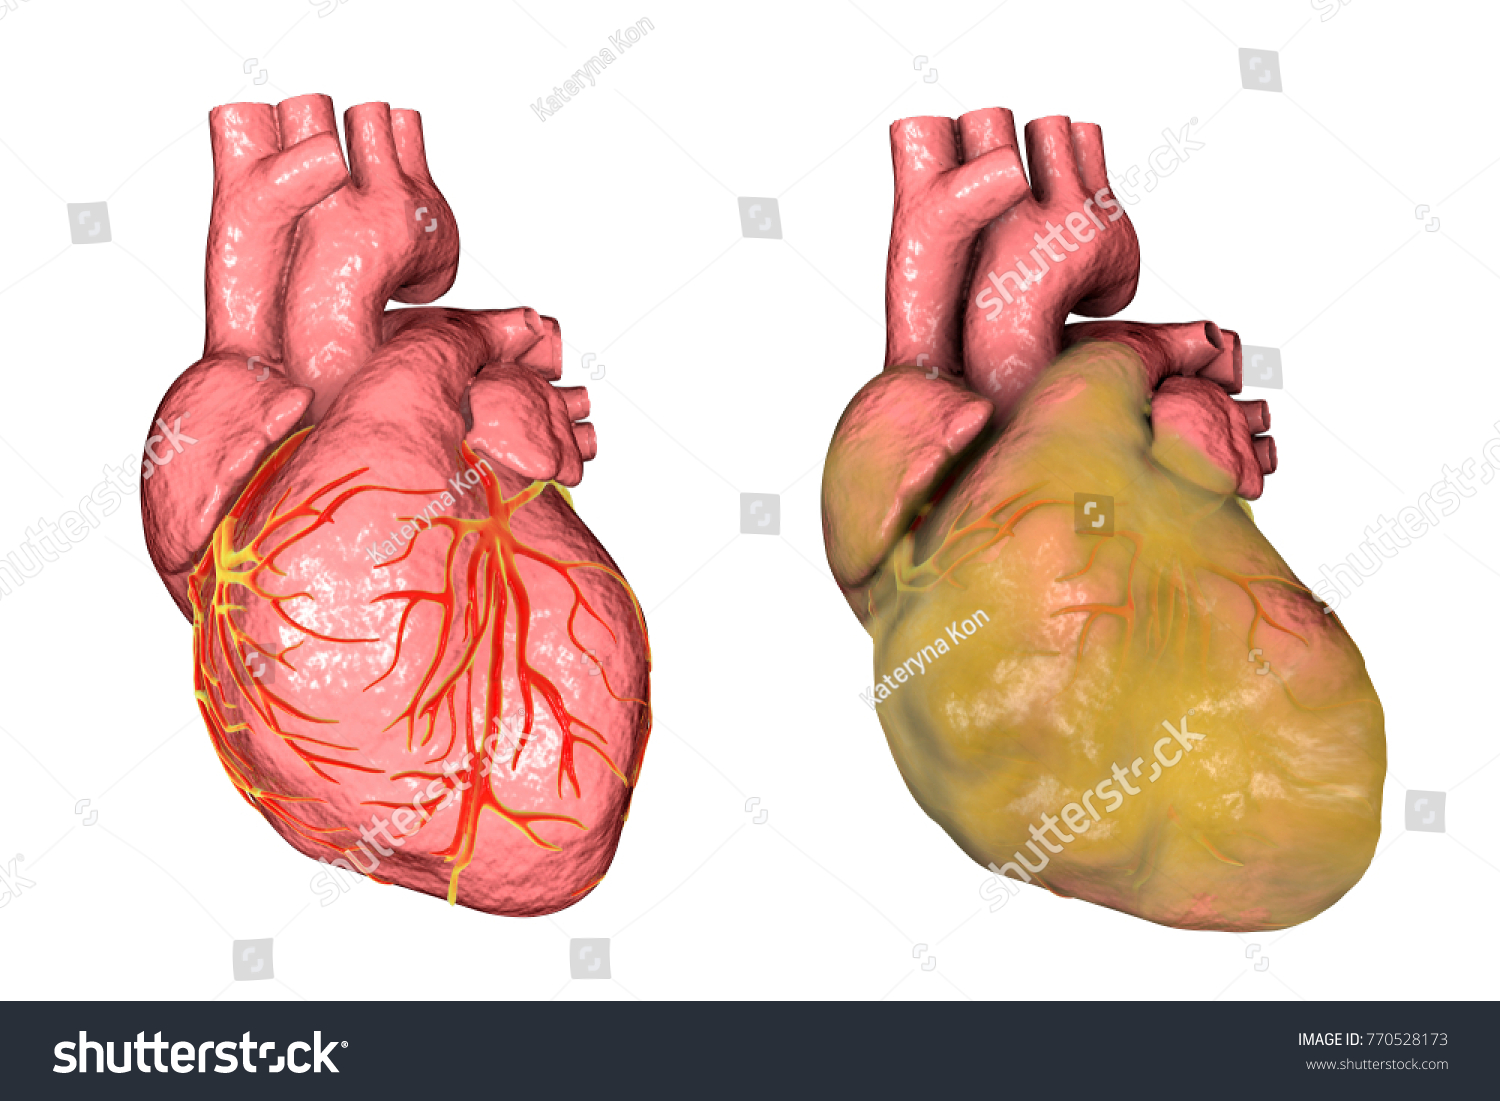 Healthy Obese Heart Left Ventricular Hypertrophy Stock Illustration ...